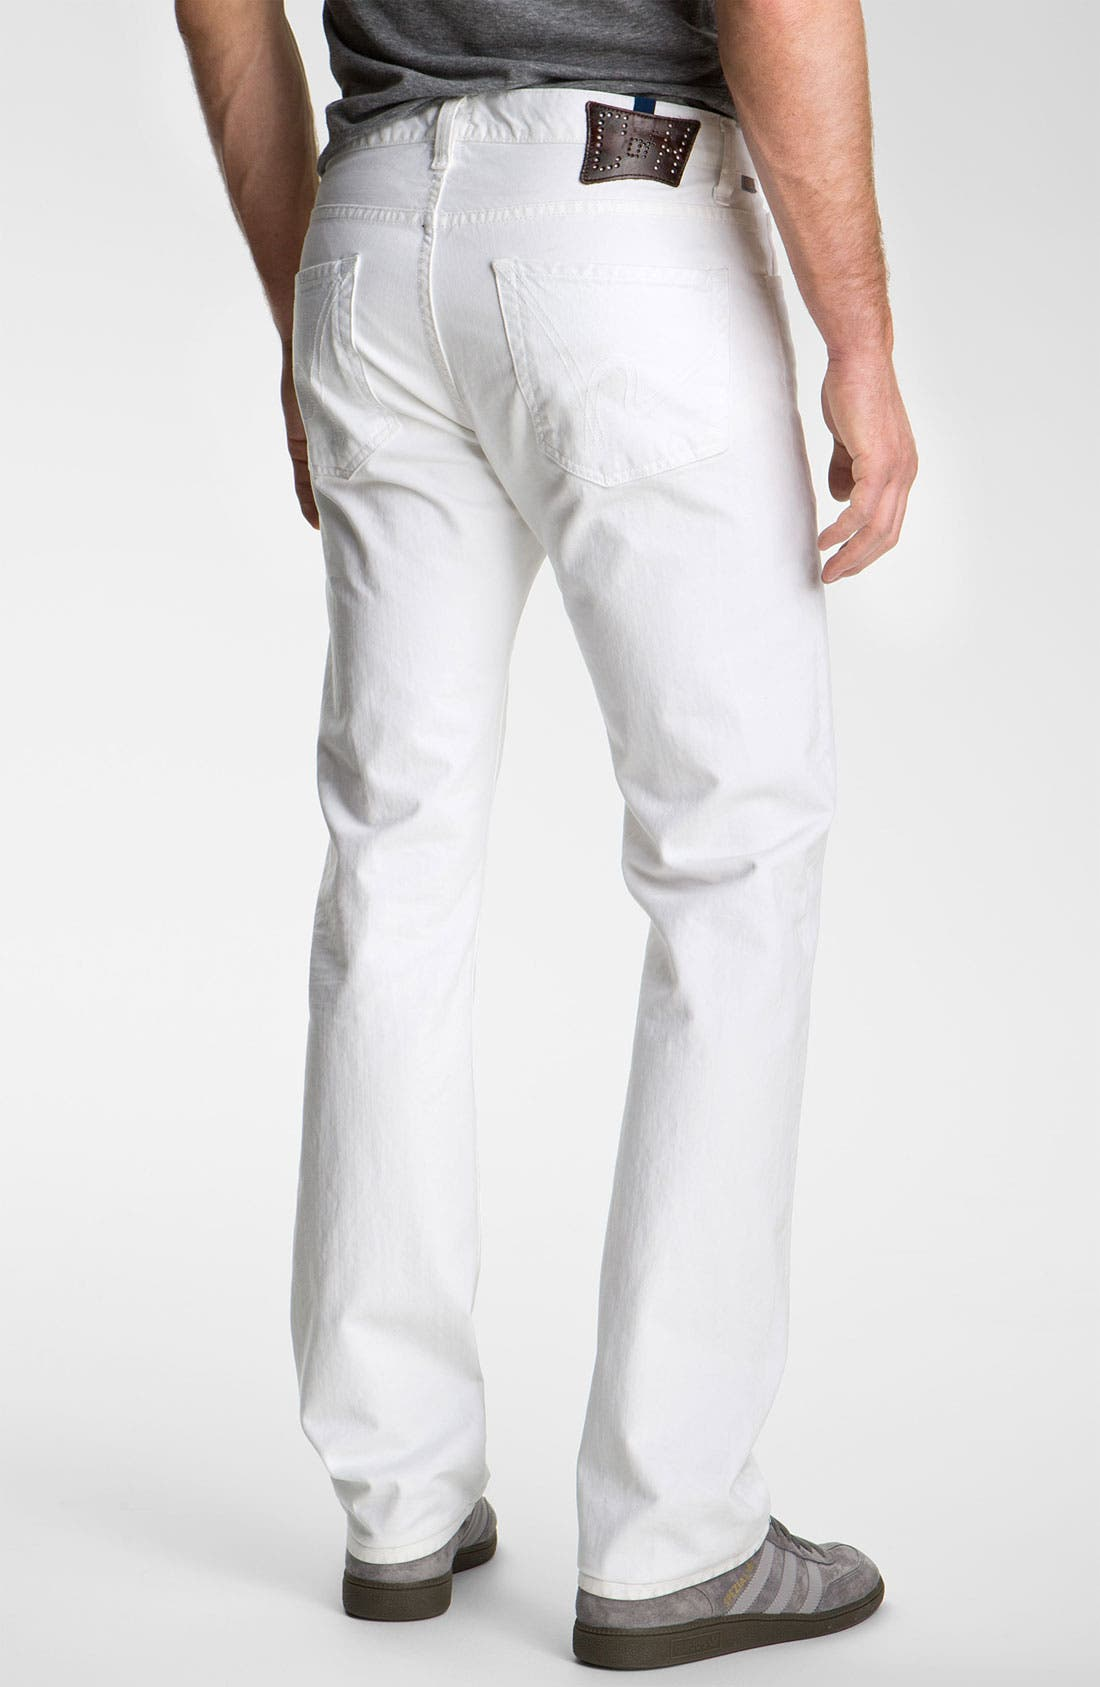 'Sid' Classic Straight Leg Jeans,                         Alternate,                         color, Sole Wash